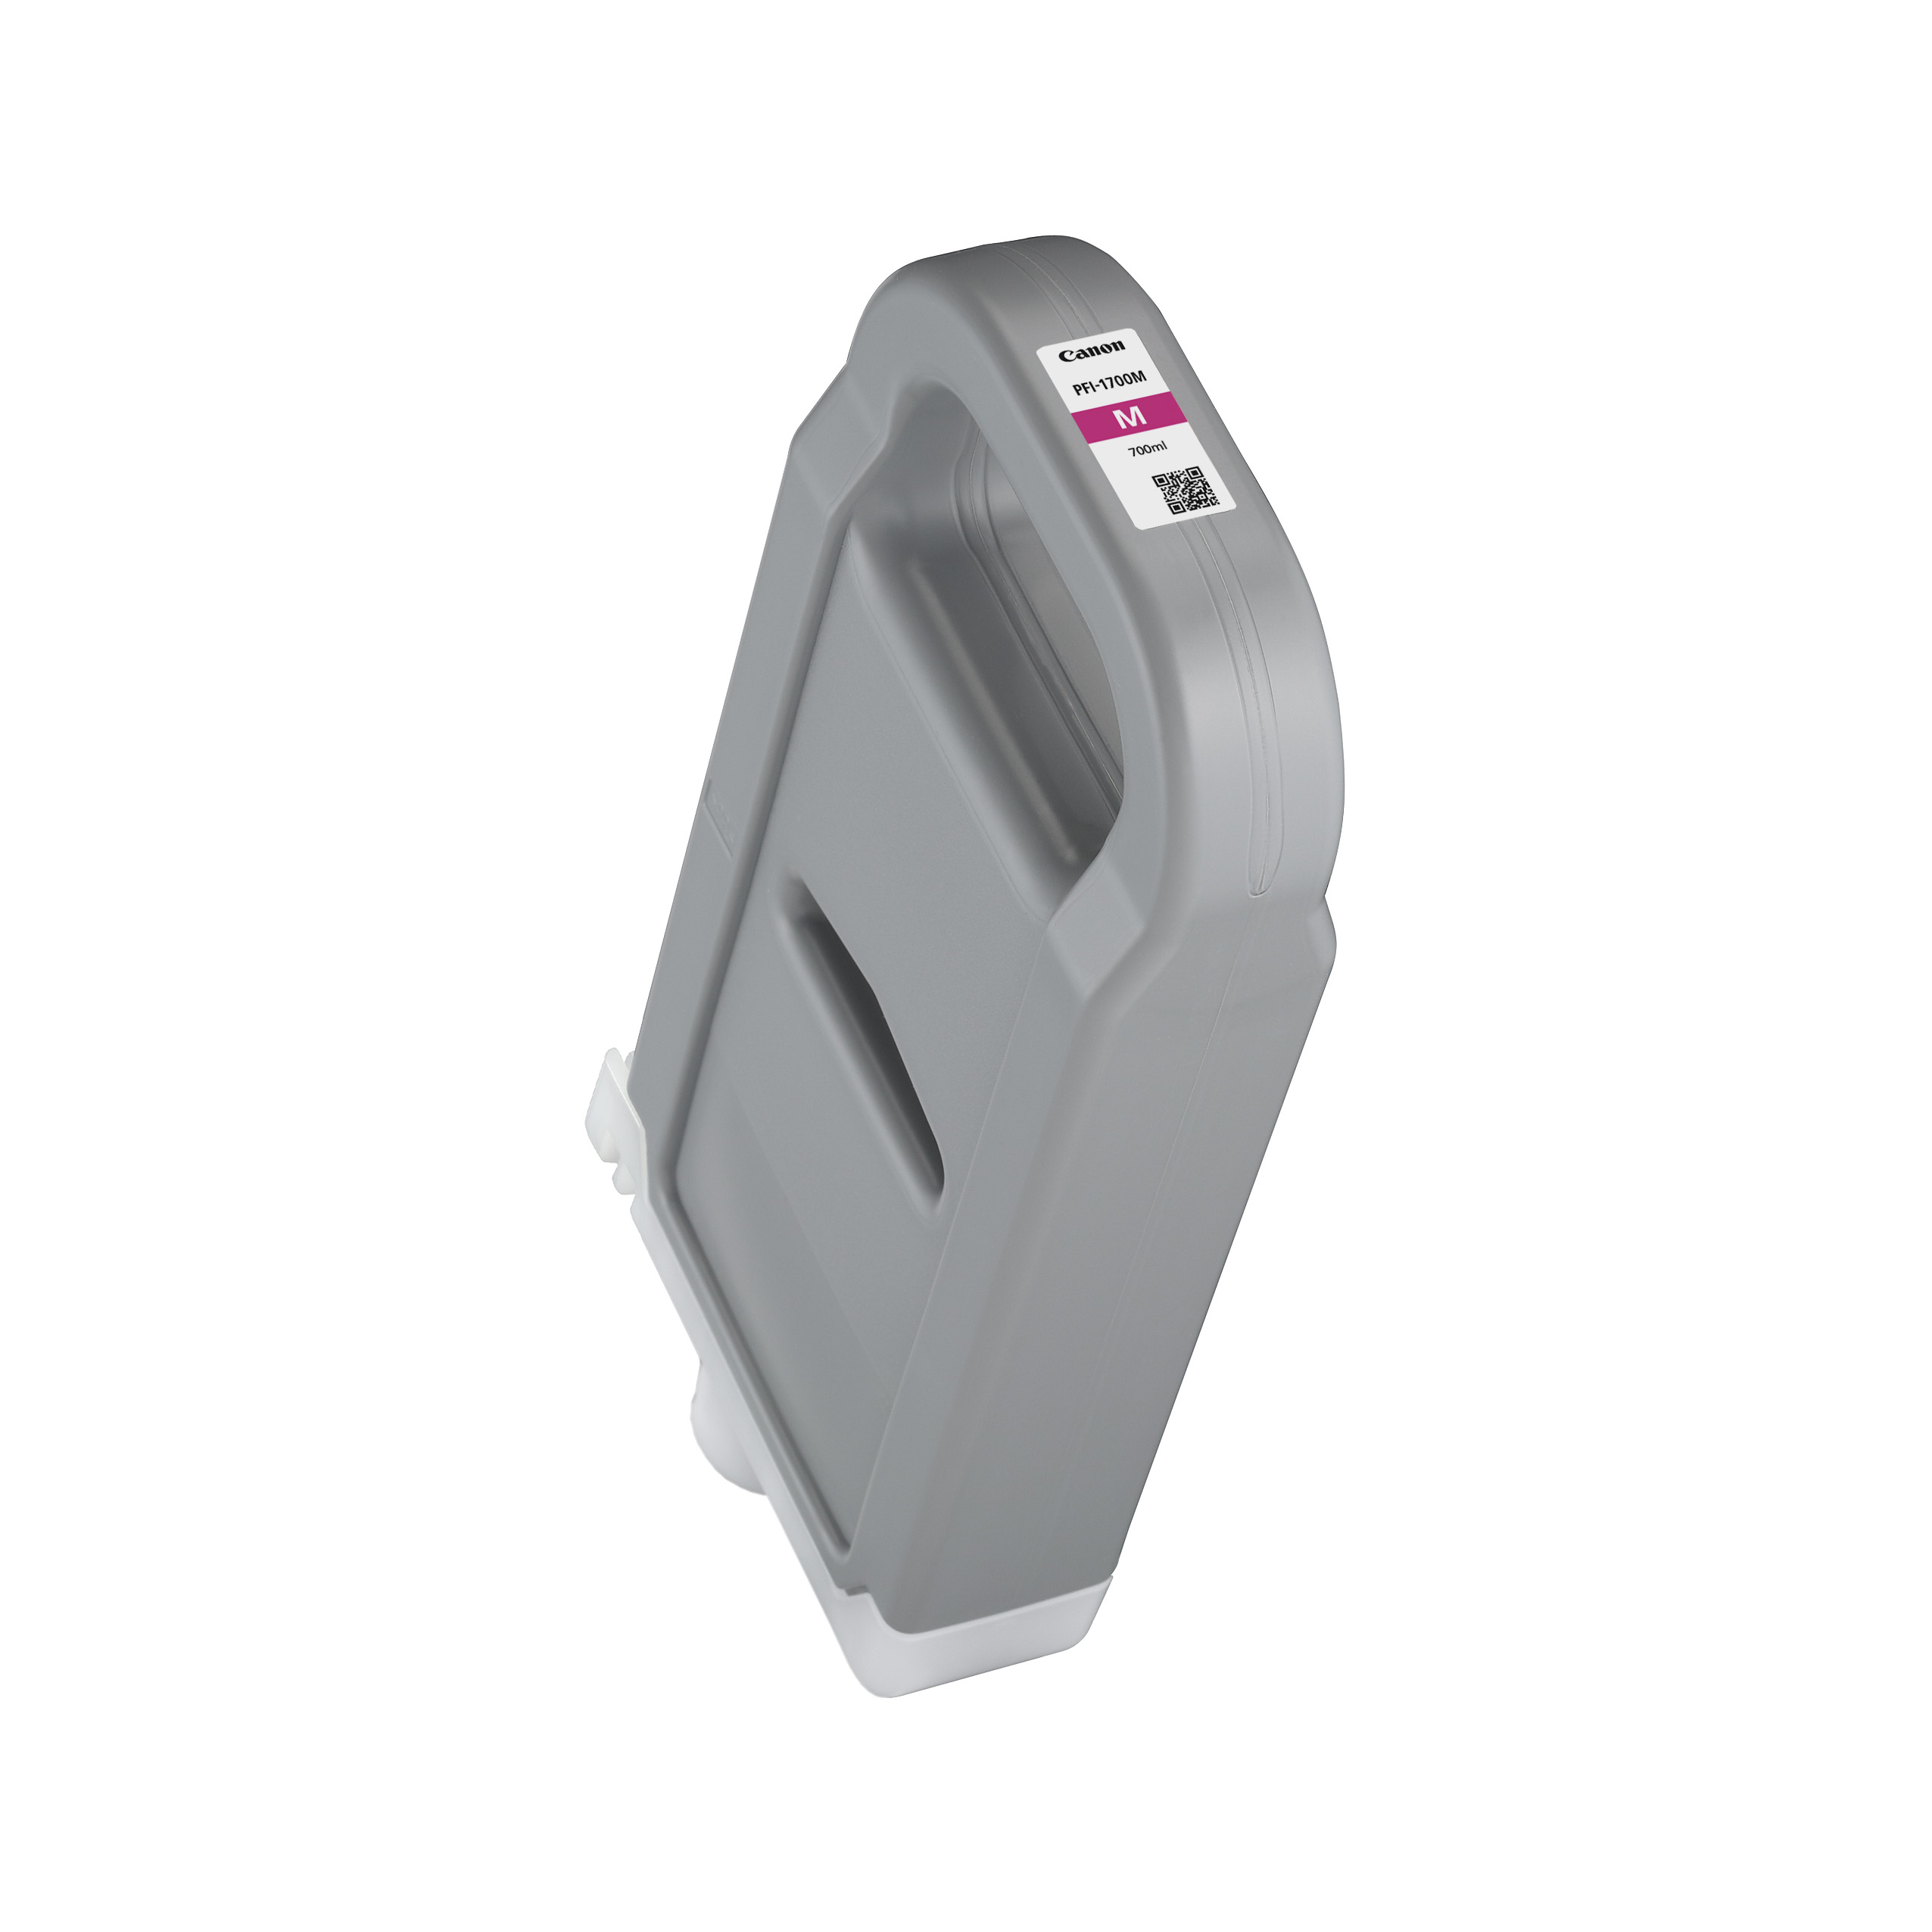 Canon PFI-1700M Magenta Ink Tank - 700ml Cartridge - for Canon PRO-2000, PRO-4000, PRO-4000S & PRO-6000S Printer - 0777C001AA - next day delivery from GDS Graphic Design Supplies Ltd